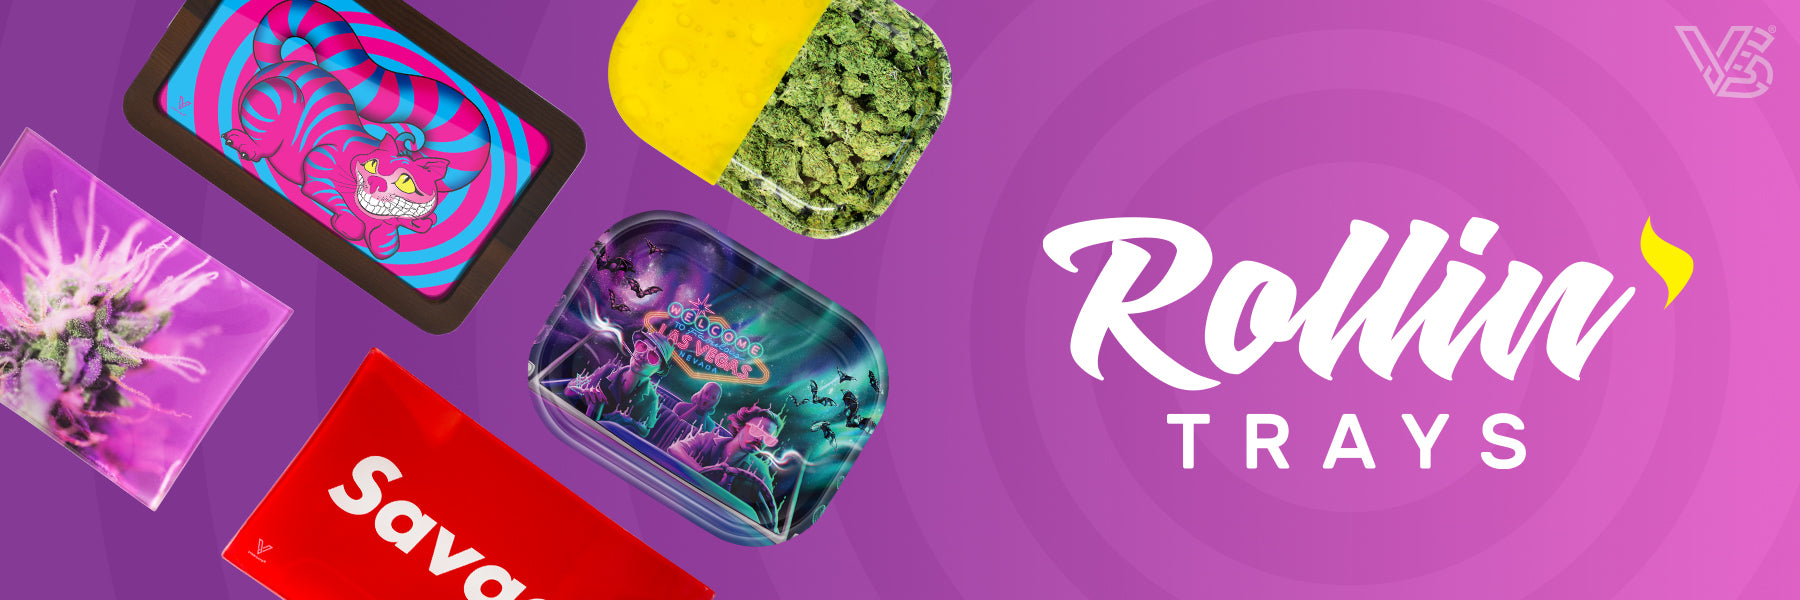 All Rollin' Trays